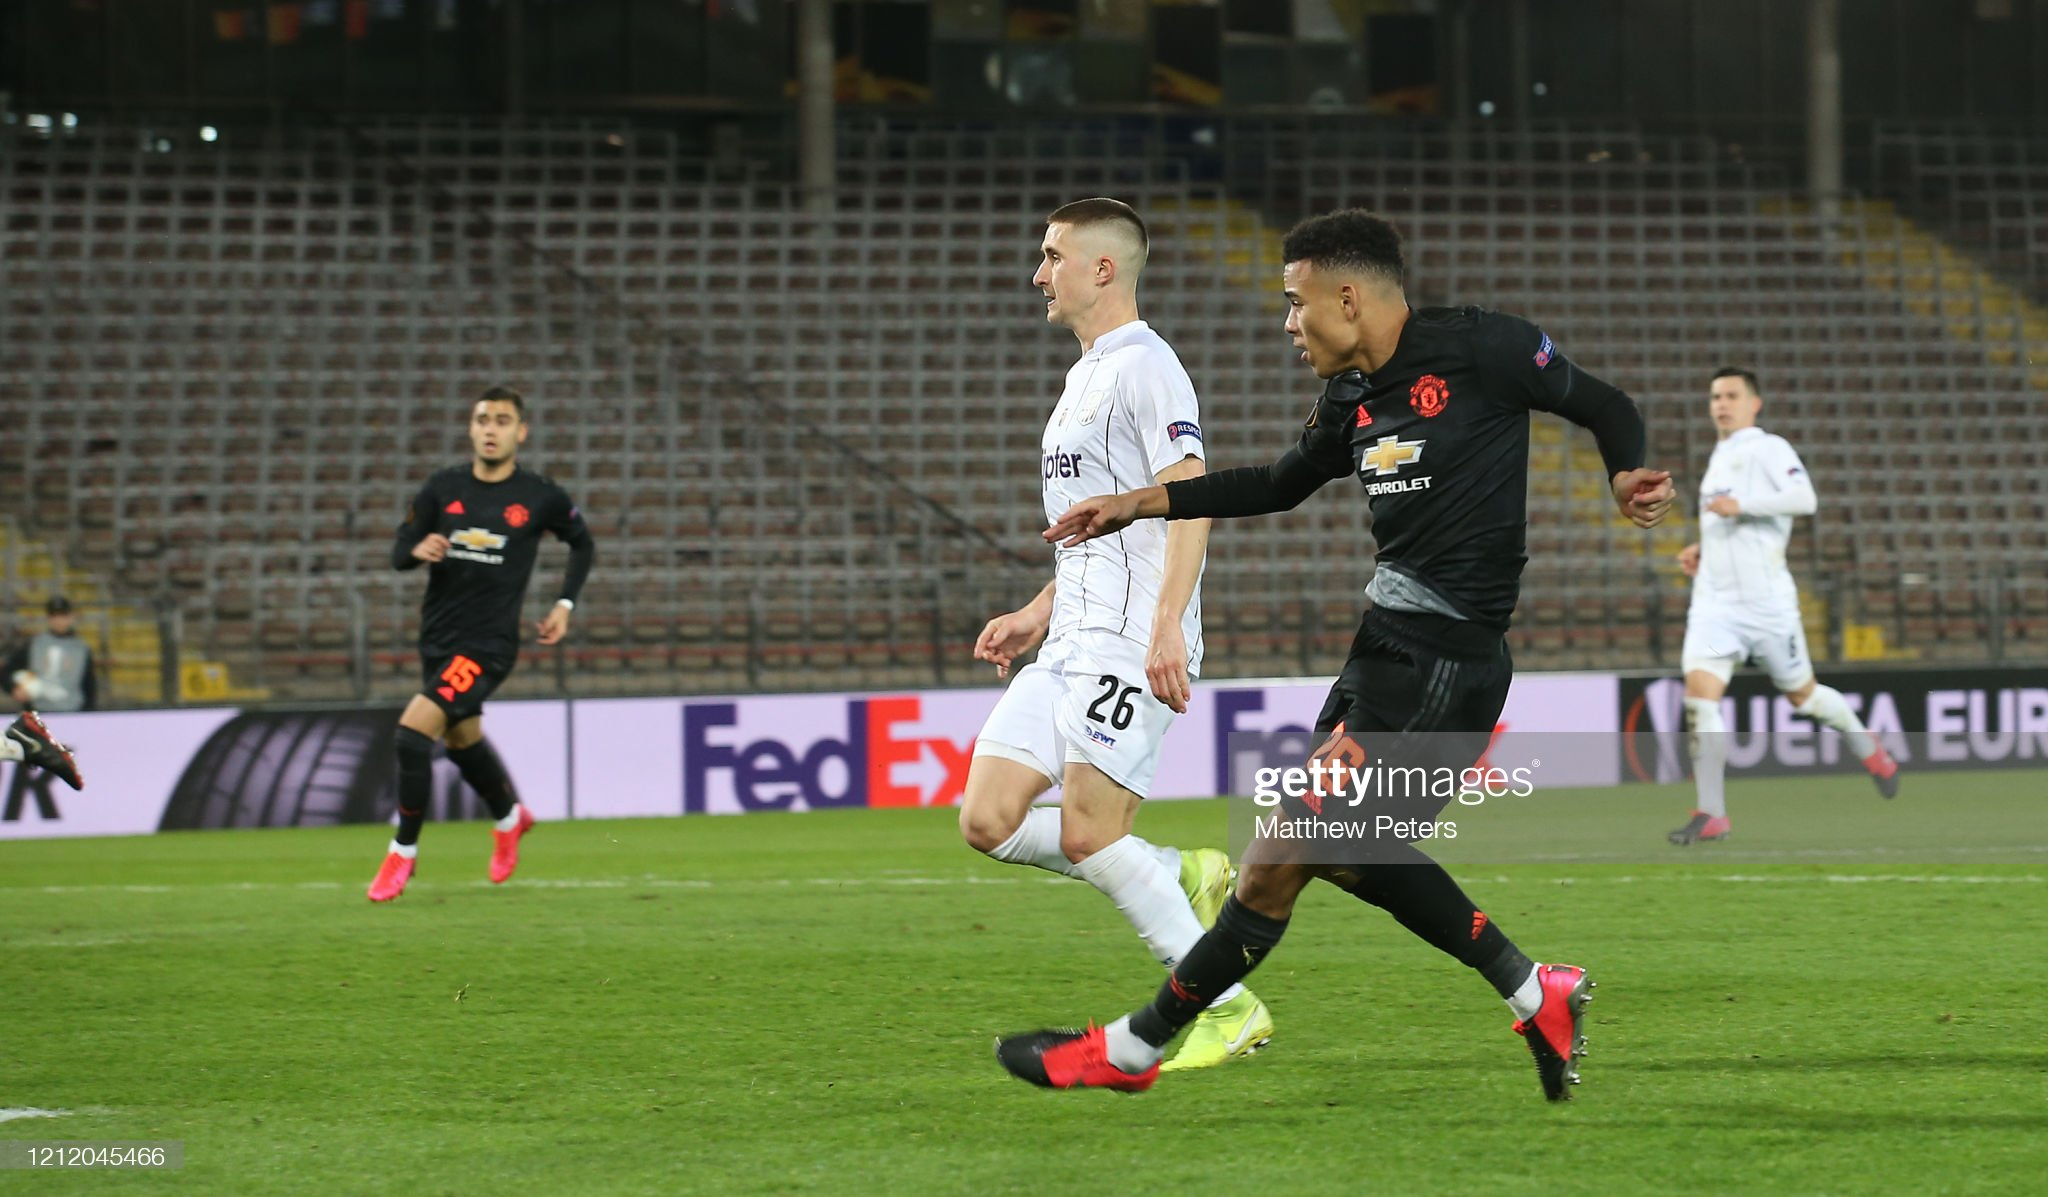 Manchester United vs LASK preview, prediction and odds